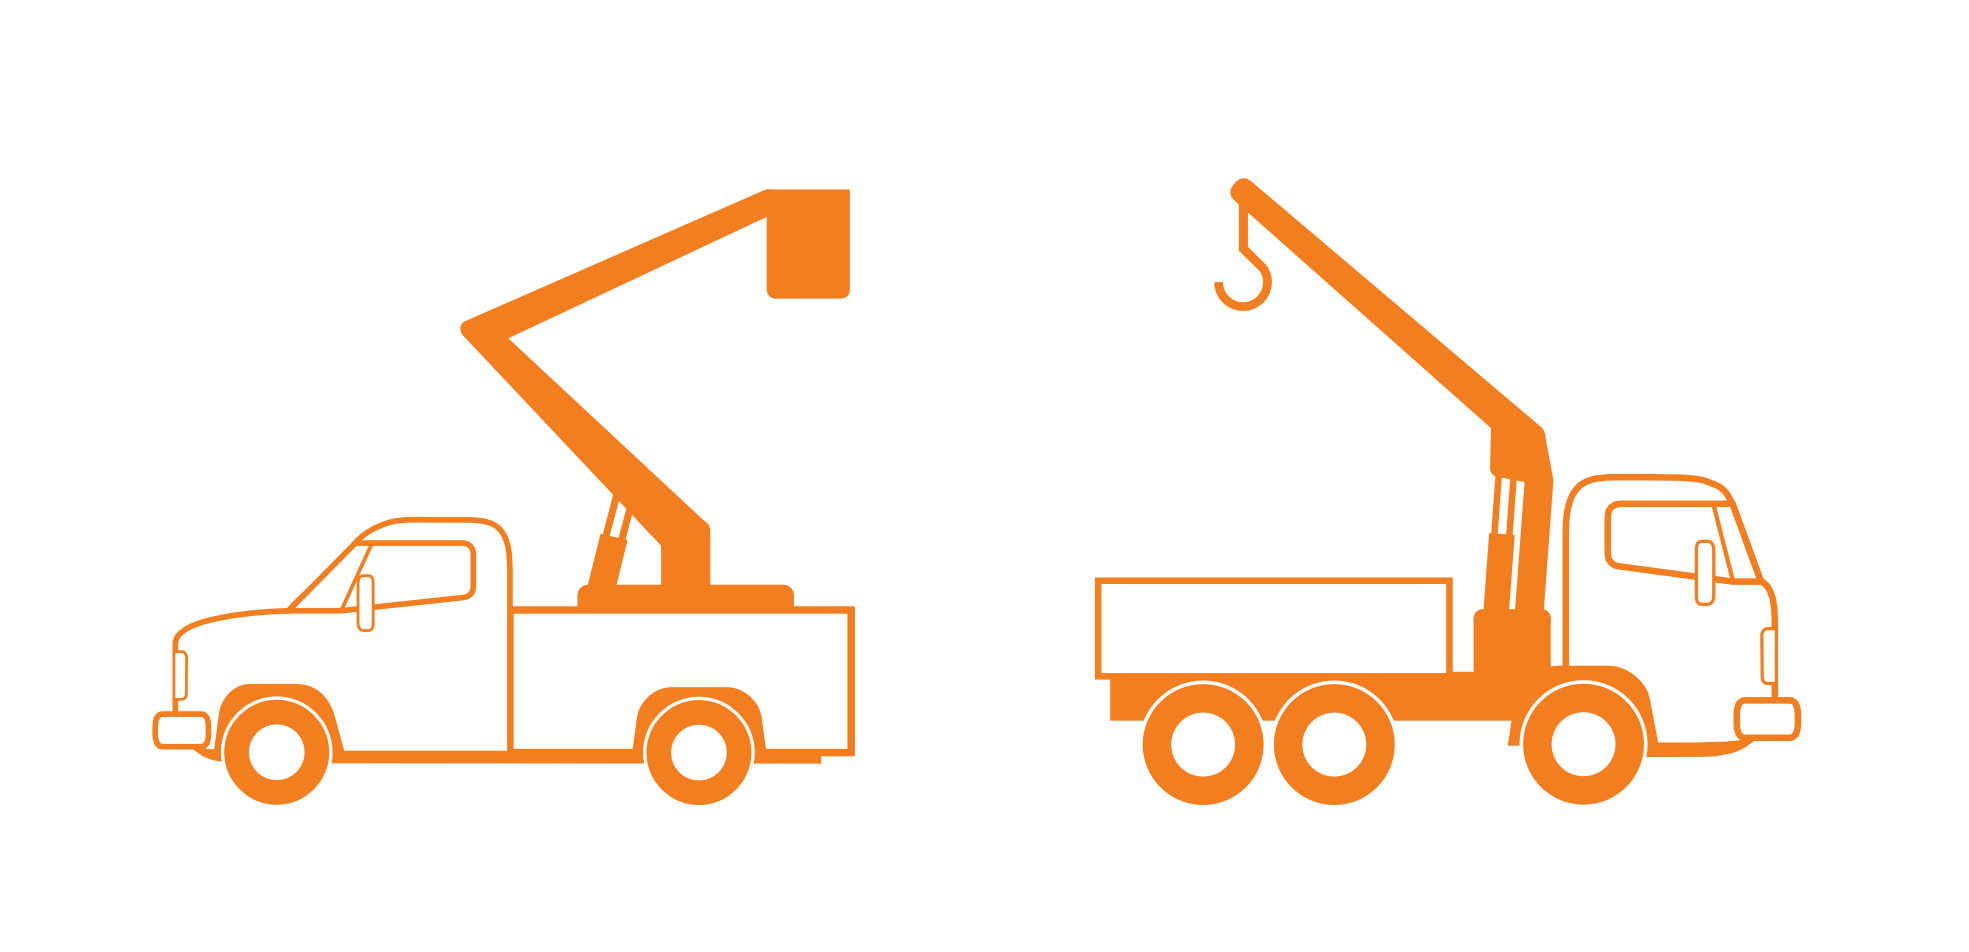 Construction at getdrawings com. Excavator clipart crane truck